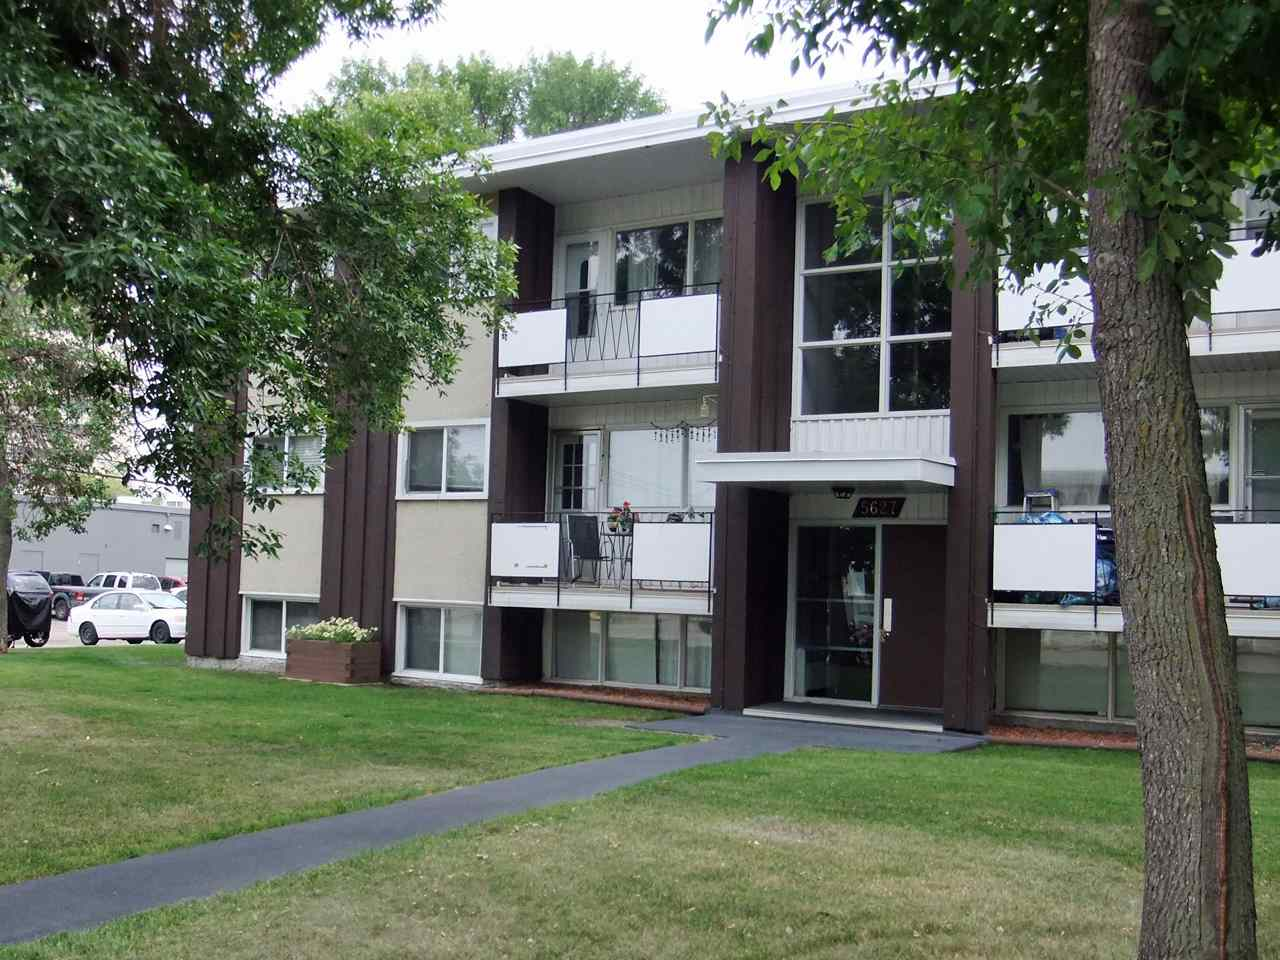 Investors, First Timers or Students (or parents!); This clean and comfy two bedroom condo is centrally located on the south side and is ready for you. The beautifully treed Charleswood complex is in the heart of Pleasantview, close to restaurants, shopping and transportation, and a short walk to Southgate and the LRT. This home features a large living room, efficient galley kitchen with dining area, two bedrooms, a full bath, and handy in-suite storage room. There is one assigned, energized parking stall close by and plenty of bicycle parking. The low condo fees (under $200 per month) include heat and water. A great condo at a great price; all that?s missing is you; so let?s get moving!